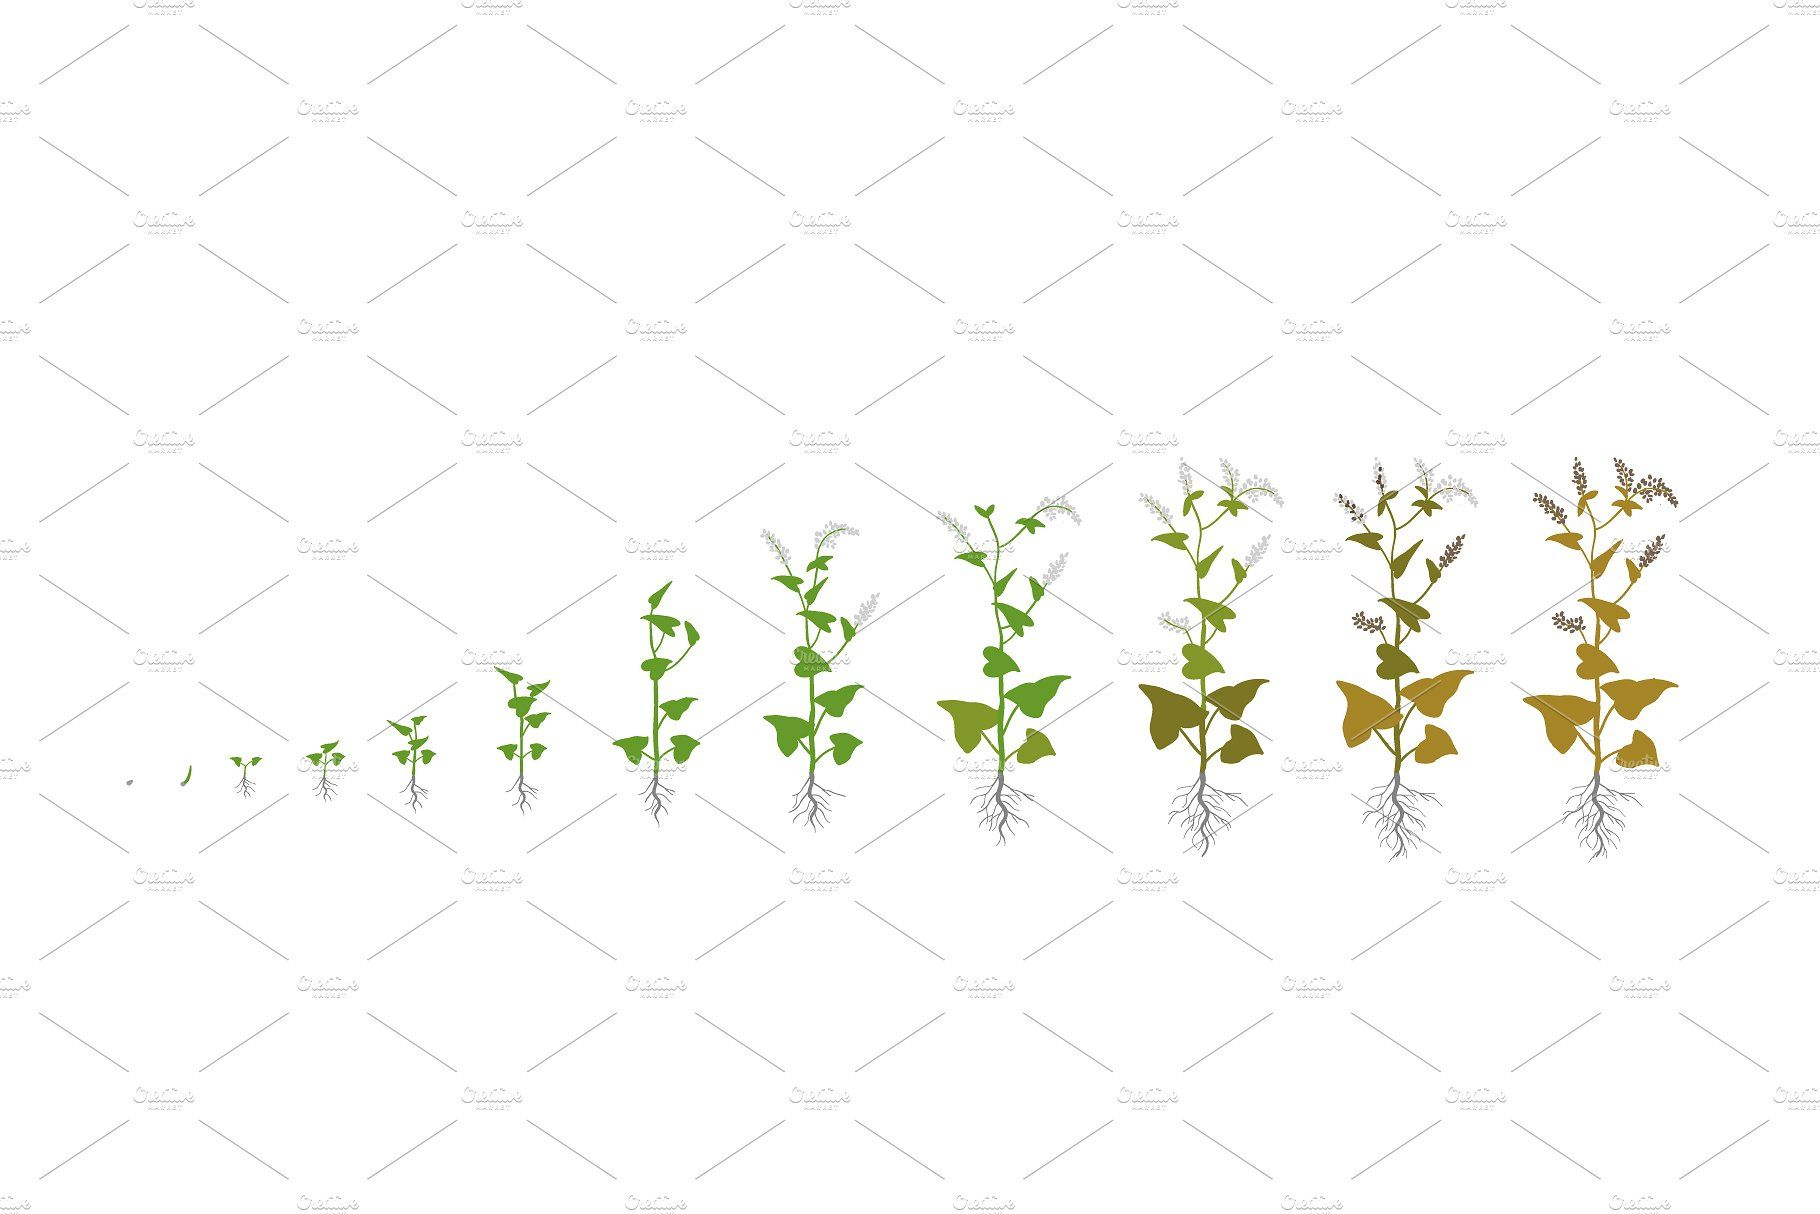 Vegetable Crop Growth Stages Planting Sunflowers Growing Plants Wheat Grass